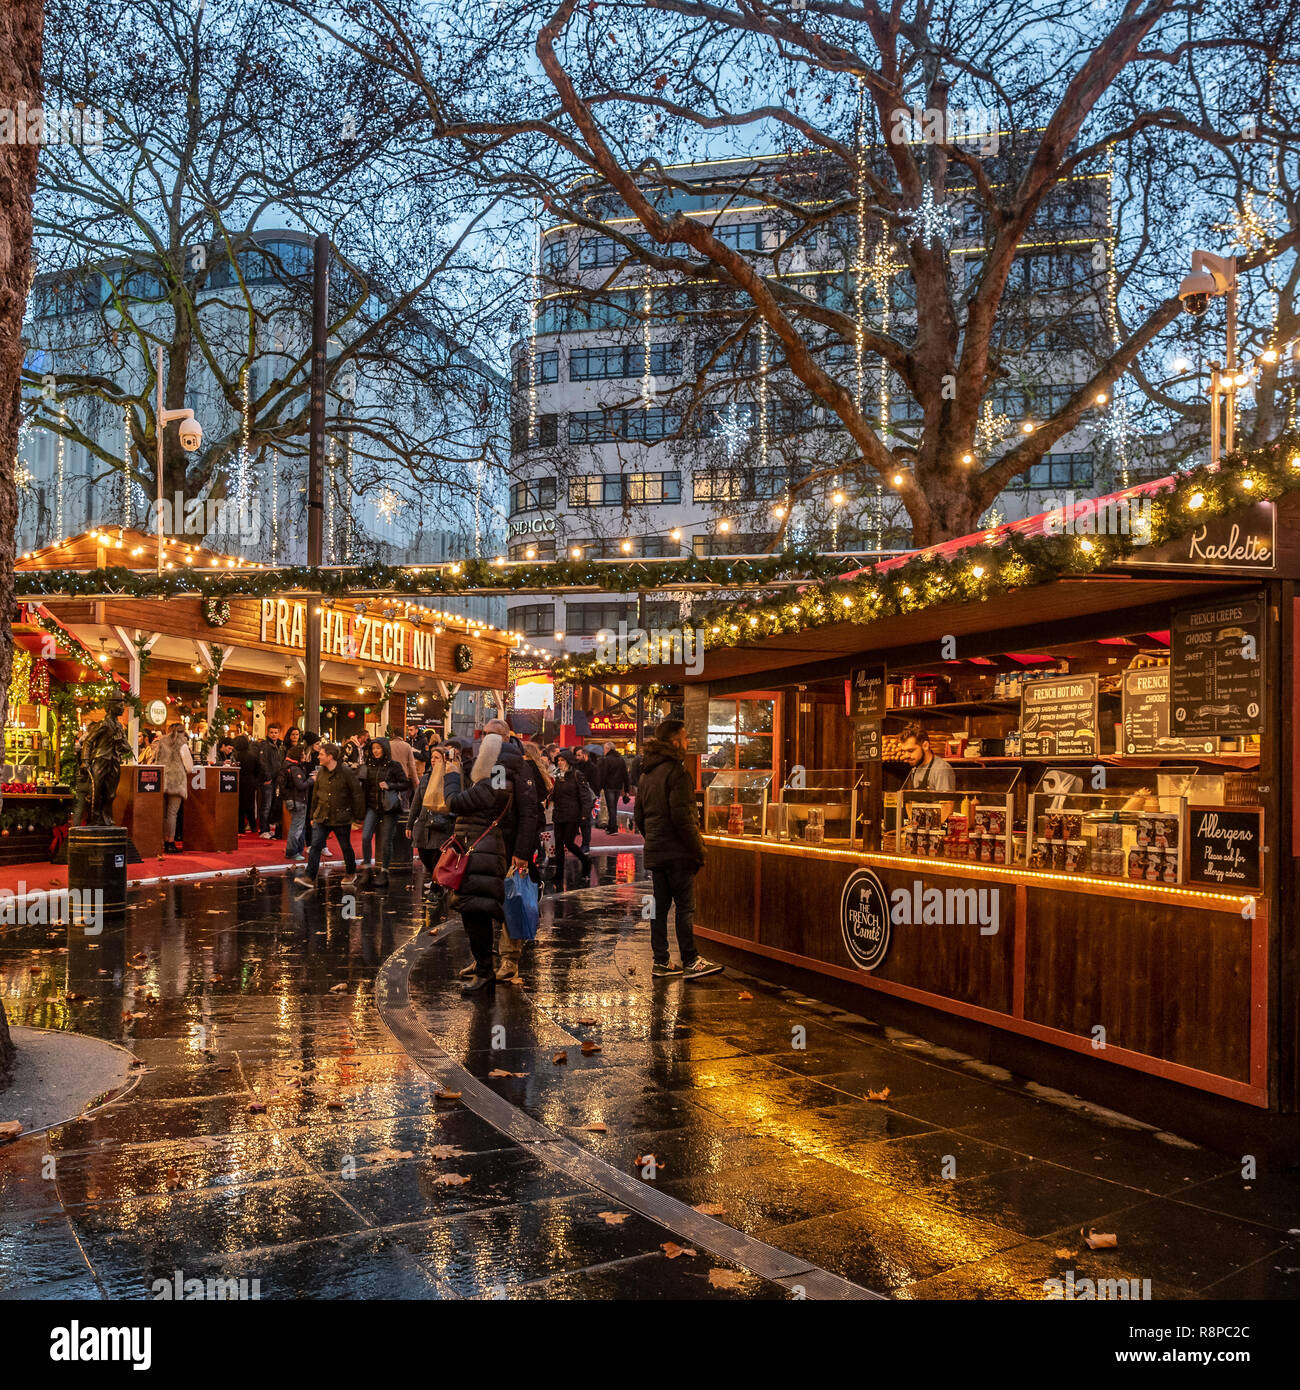 Stalls at Leicester Square Christmas Market, London, UK. Stock Photo